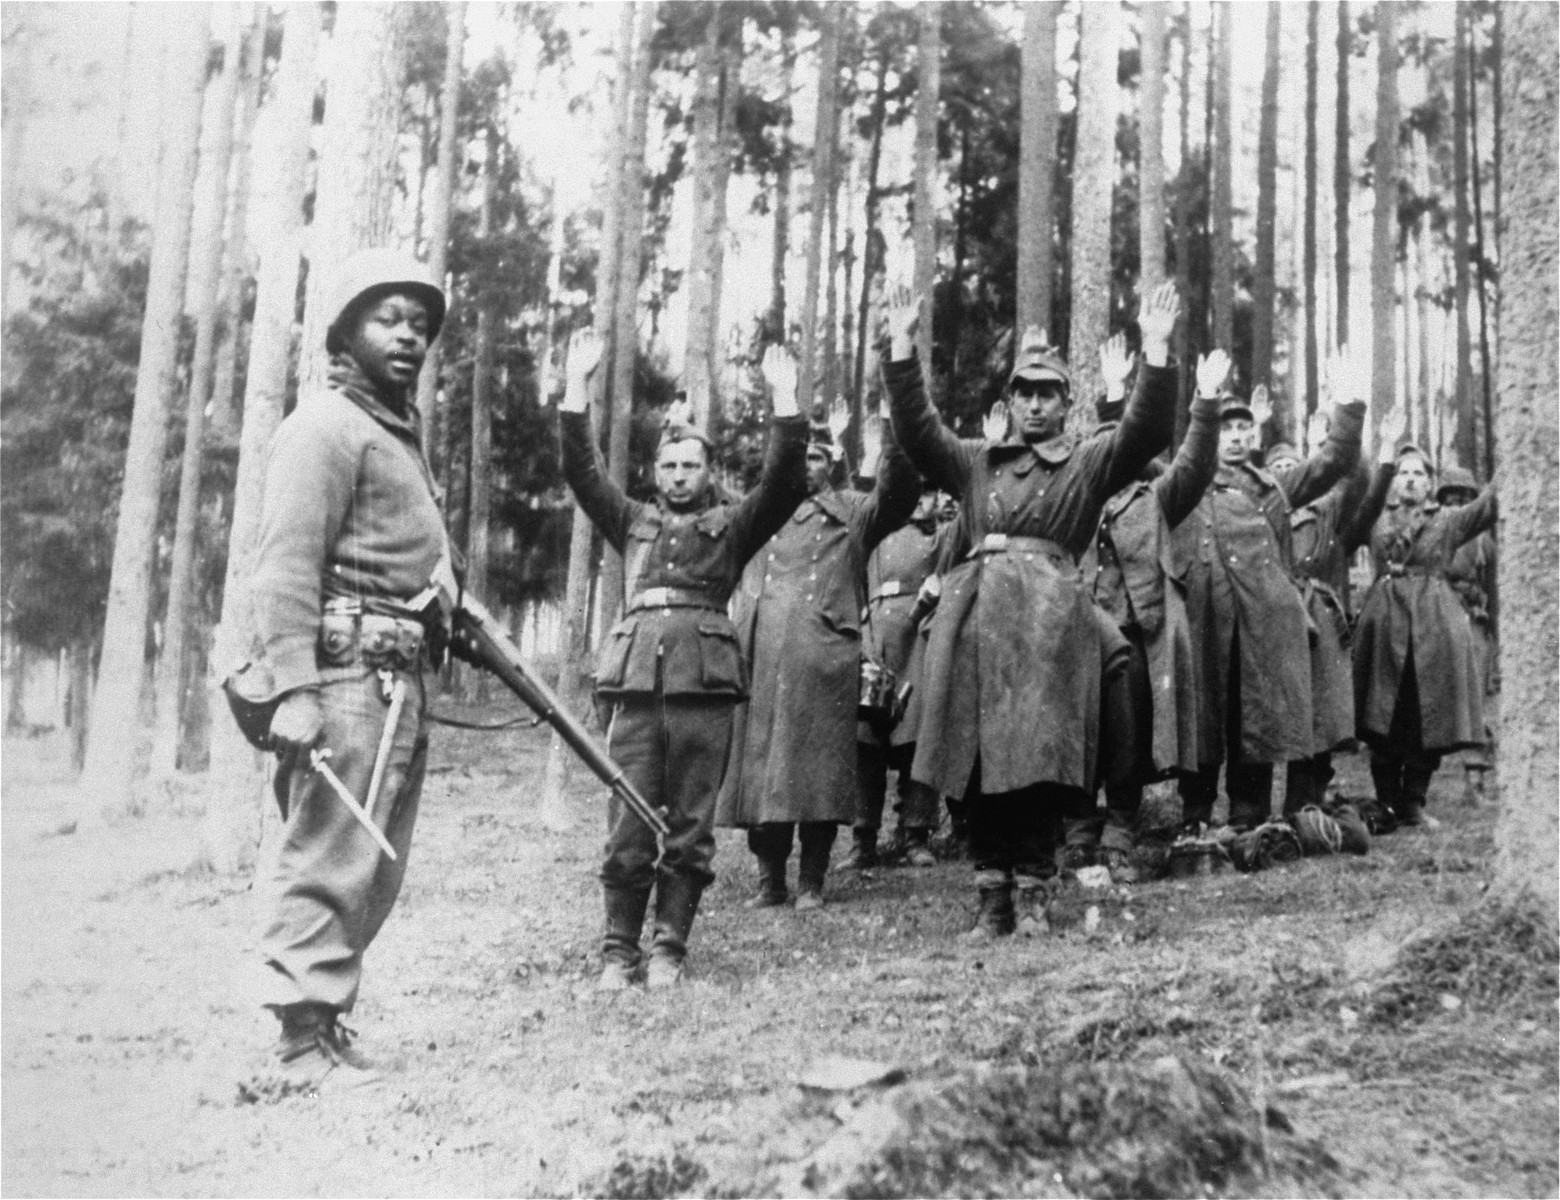 An African-American soldier with the 12th Armored Division, Seventh U.S. Army, stands guard over a group of German soldiers captured in the forest.